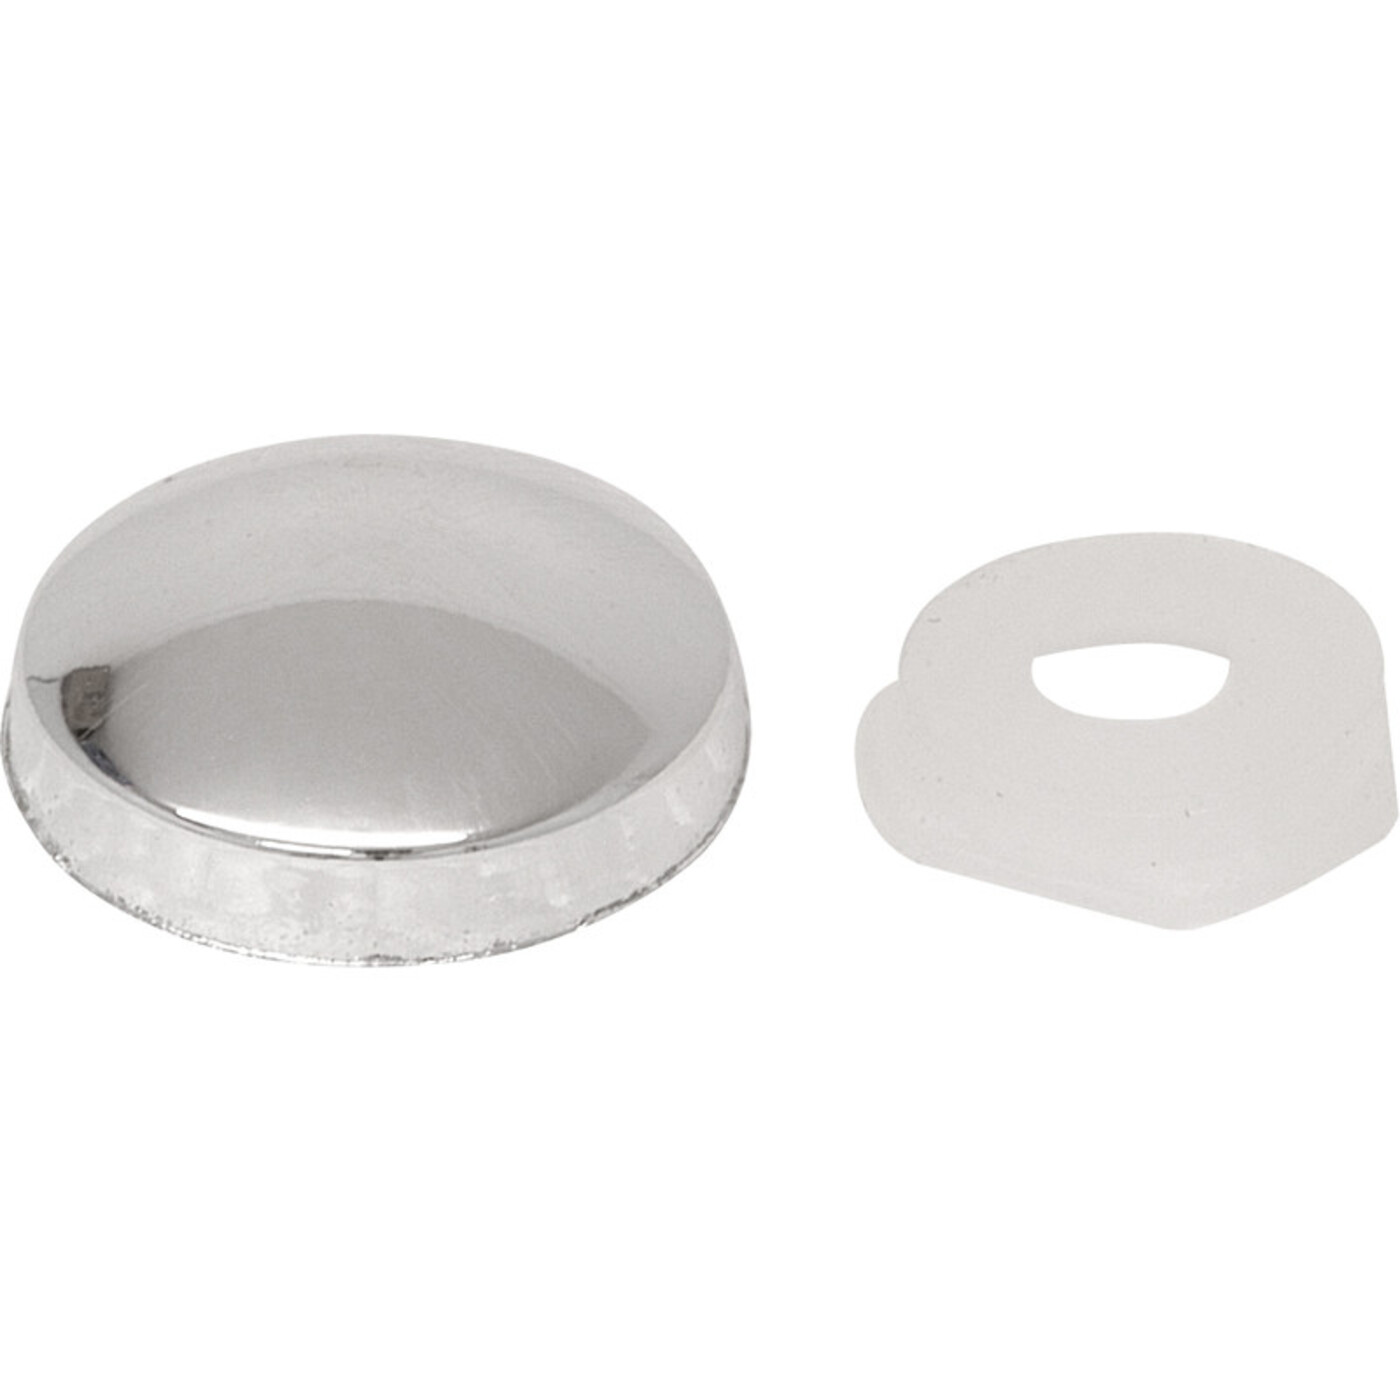 Domed screw cap covers silver